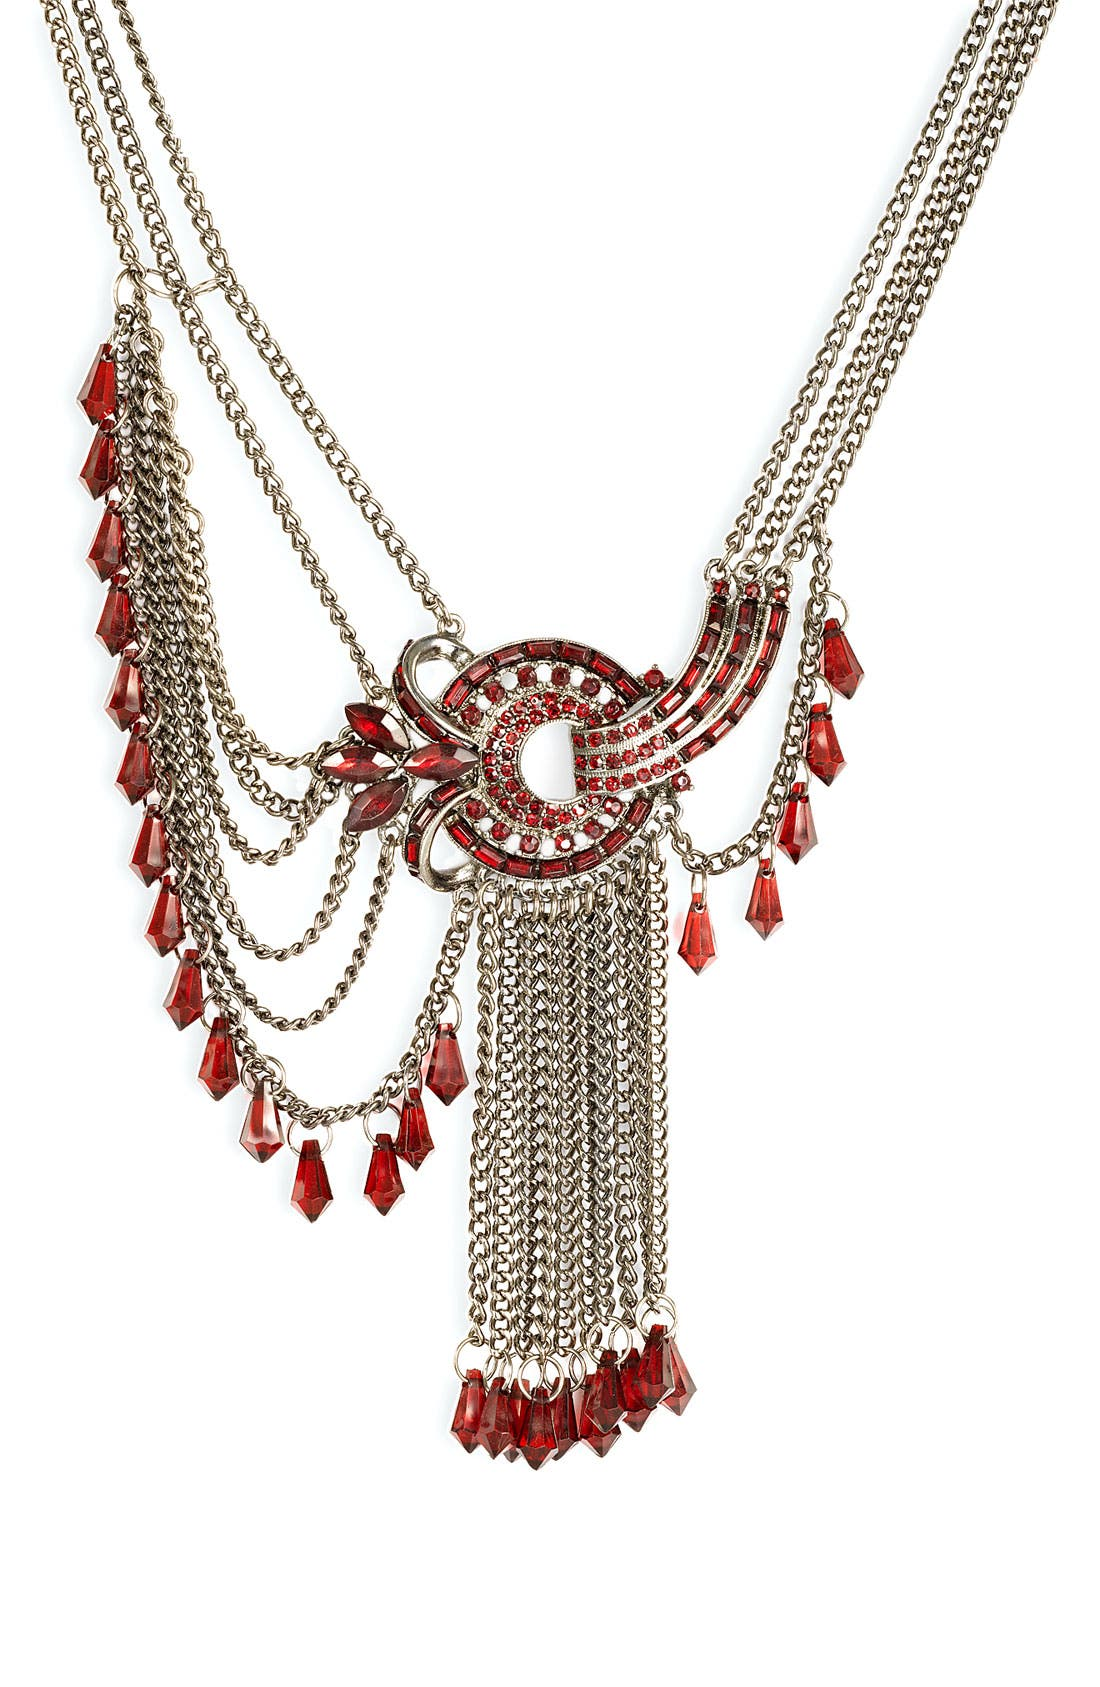 Alternate Image 1 Selected - Jewelry Fashions Multi Chain Statement Necklace